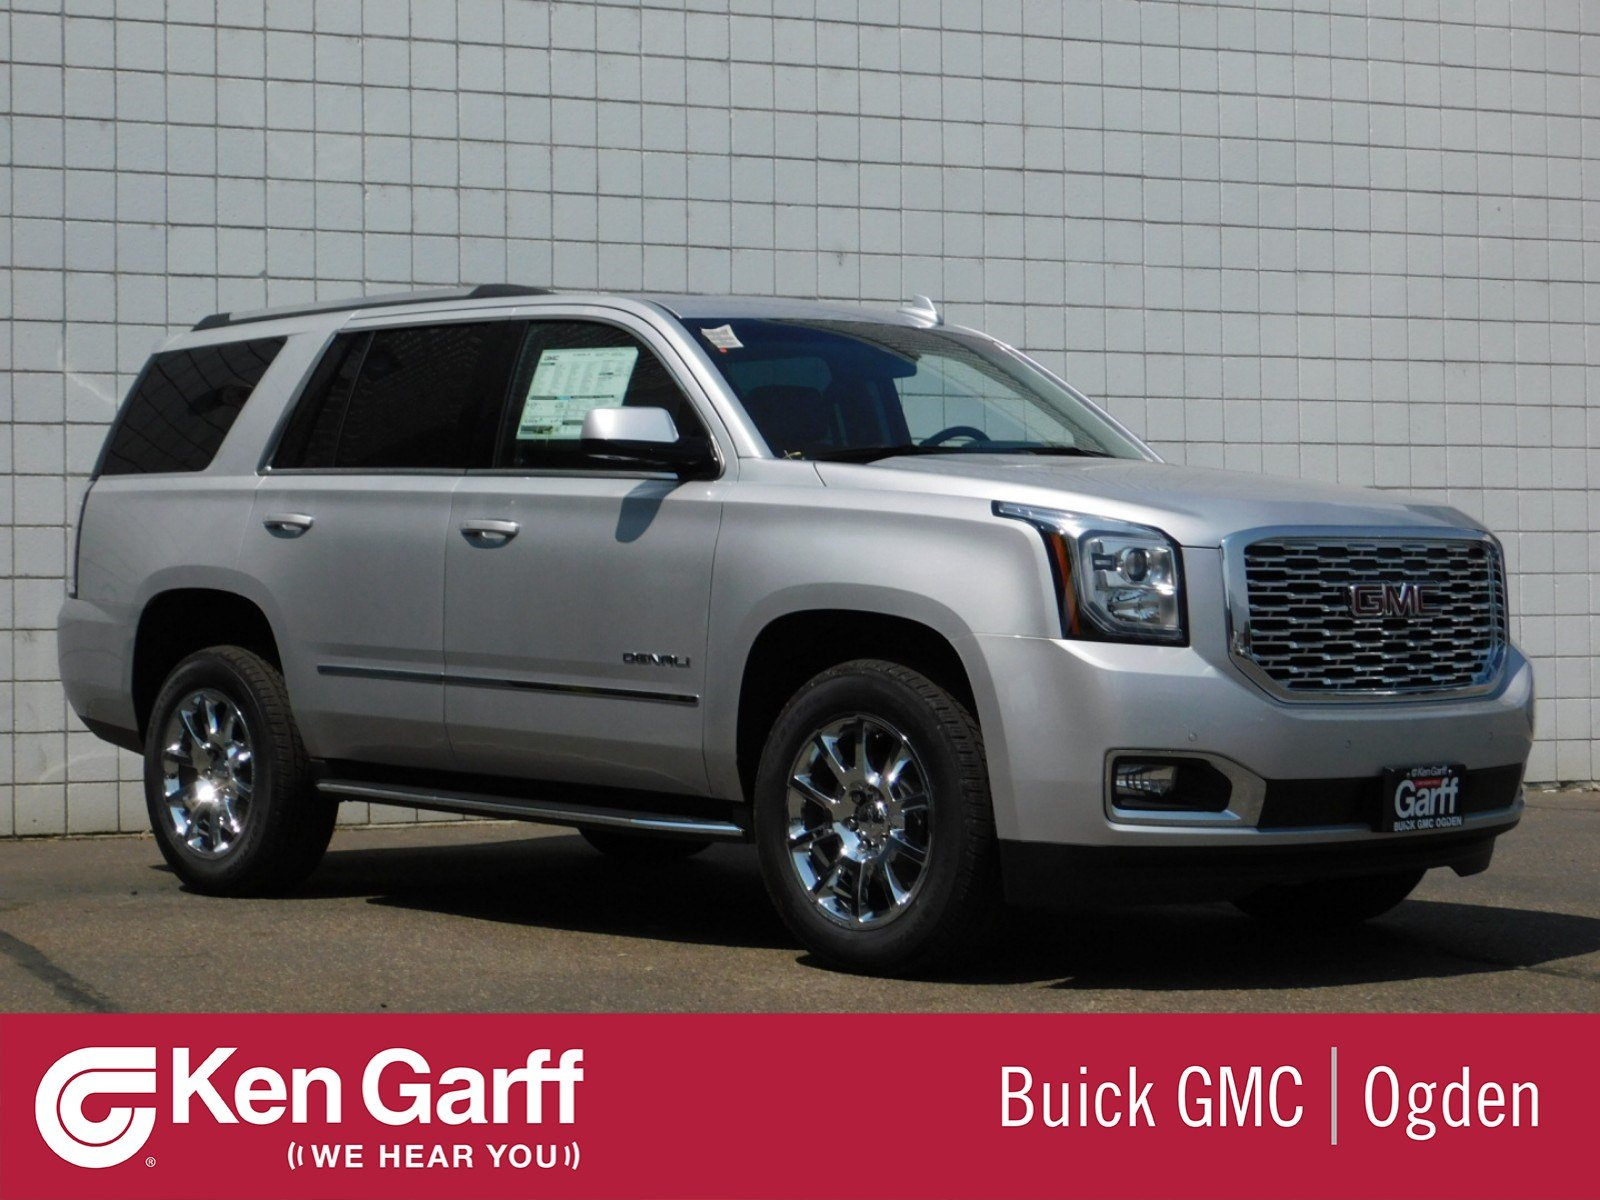 New 2019 Gmc Yukon Denali Sport Utility 3g19015 Ken Garff 0 Dodge Dakota Custom Fit Vehicle Wiring Tow Ready